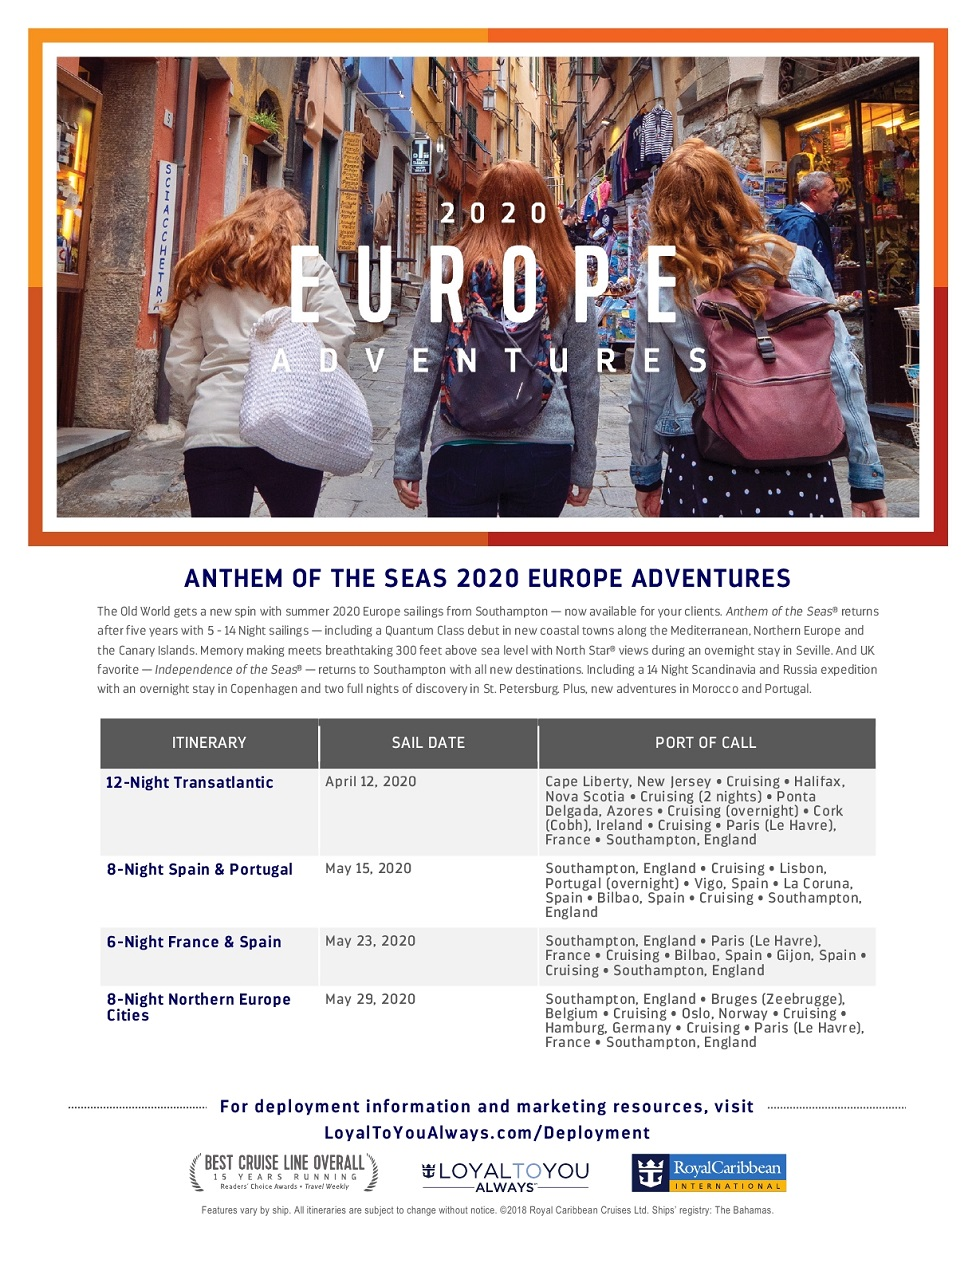 Royal Caribbean EUROPA (UK) 2020